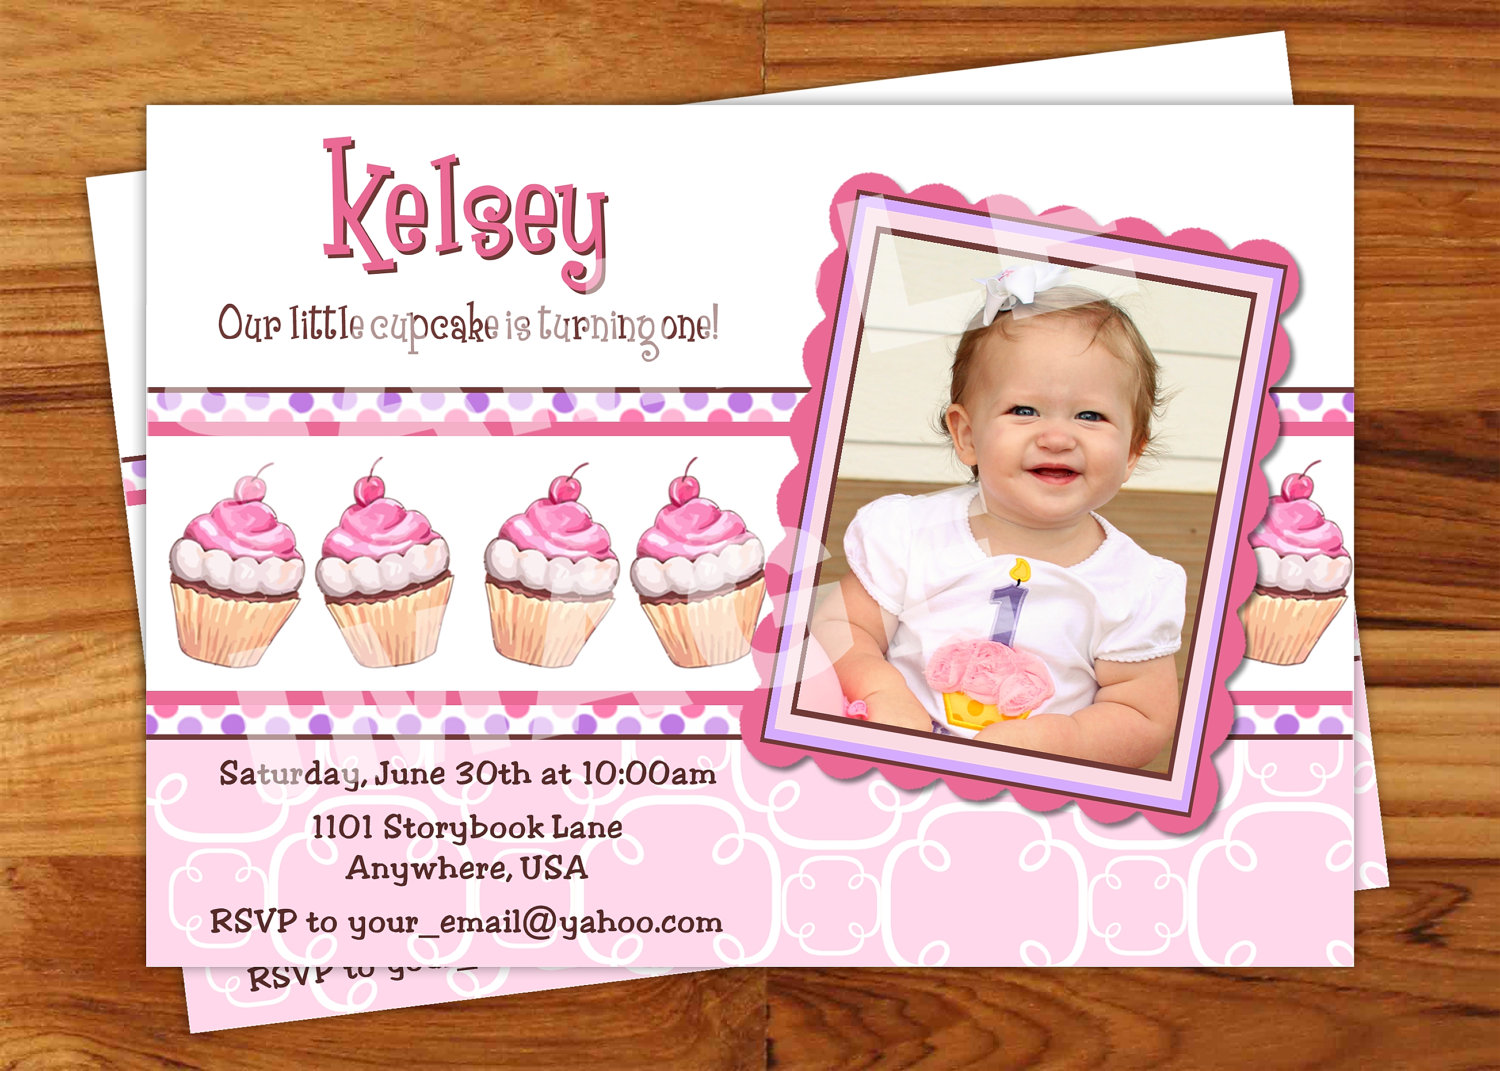 5th birthday invitation quotes ; first-birthday-party-invitation-wording-how-to-make-your-own-Birthday-invitations-using-word-7